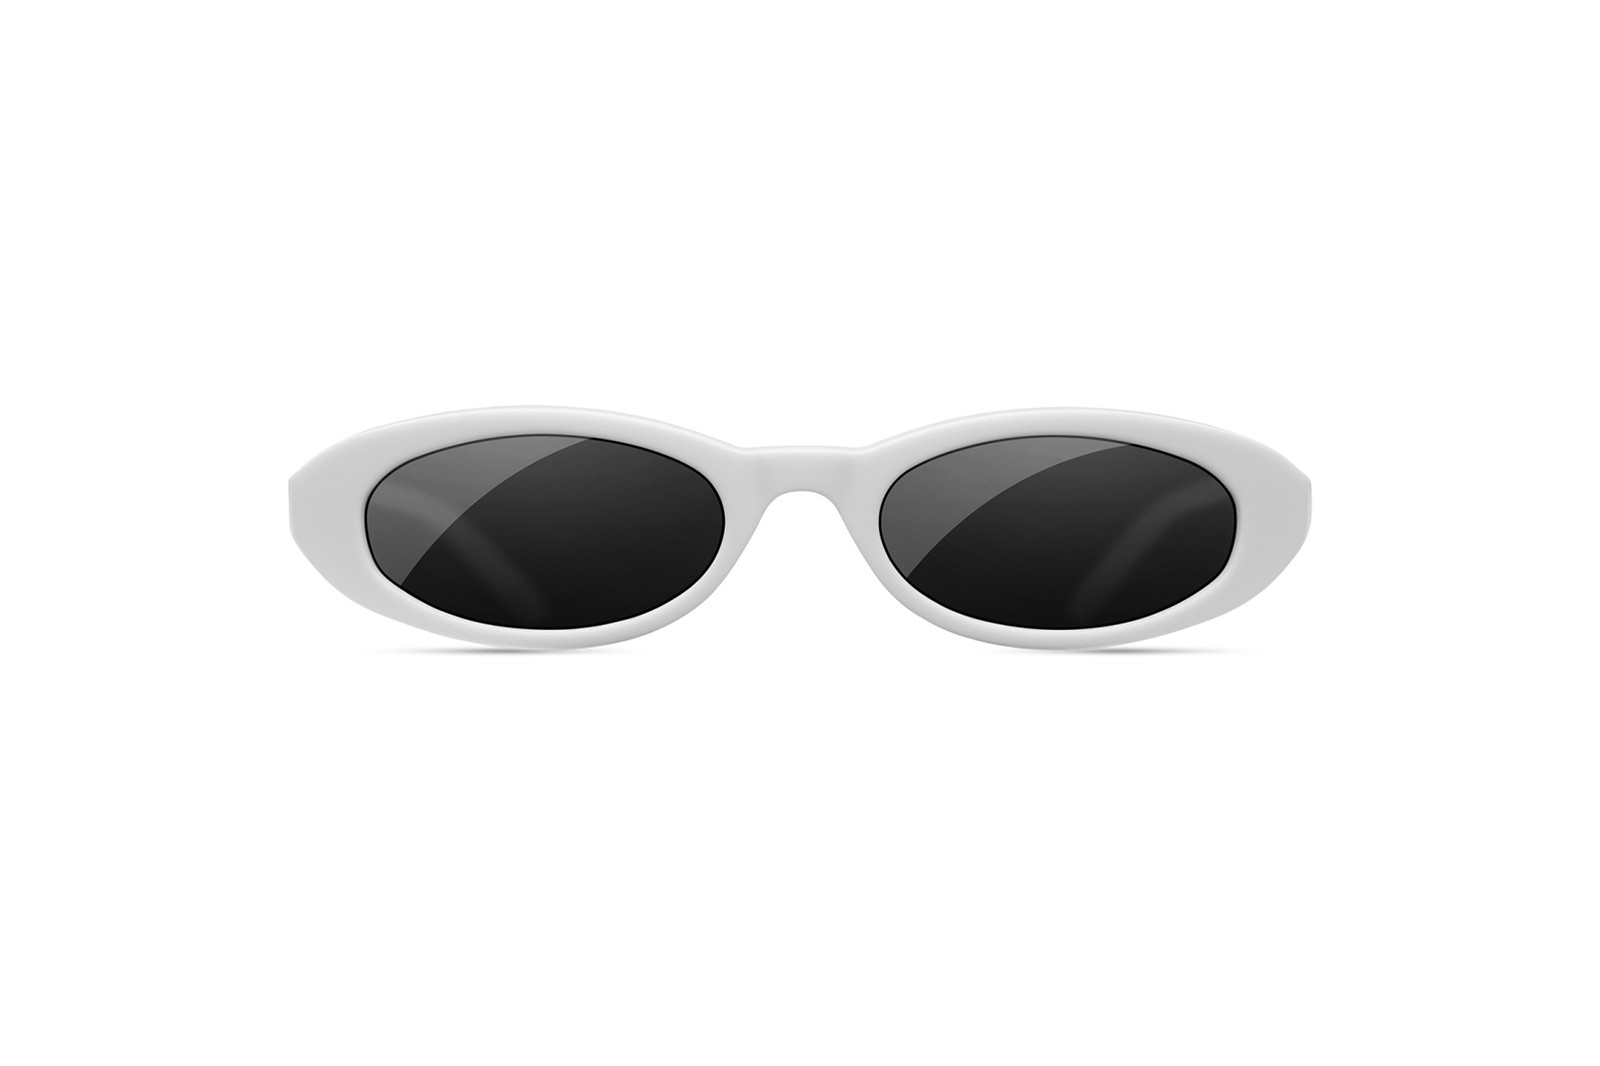 CHIMI eyewear round oval sunglasses brand mini small sci fi futuristic shades affordable stockholm label joel ighe pink white black unisex mens womens where to buy